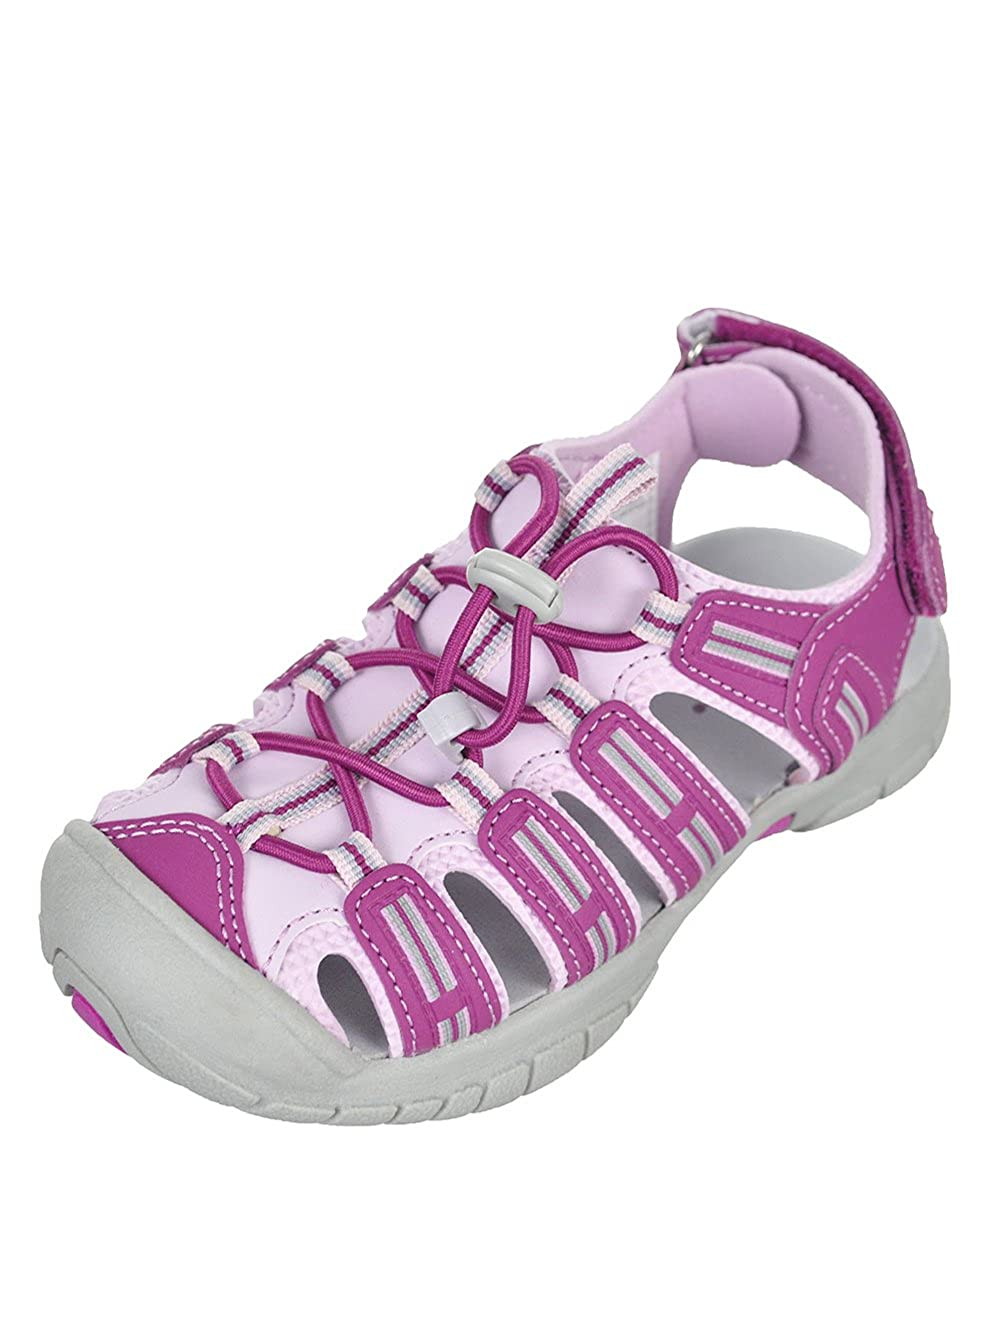 Purple Pick a Size Khombu Girls Kids Closed Toe Sport Sandals Shoe Light Grey